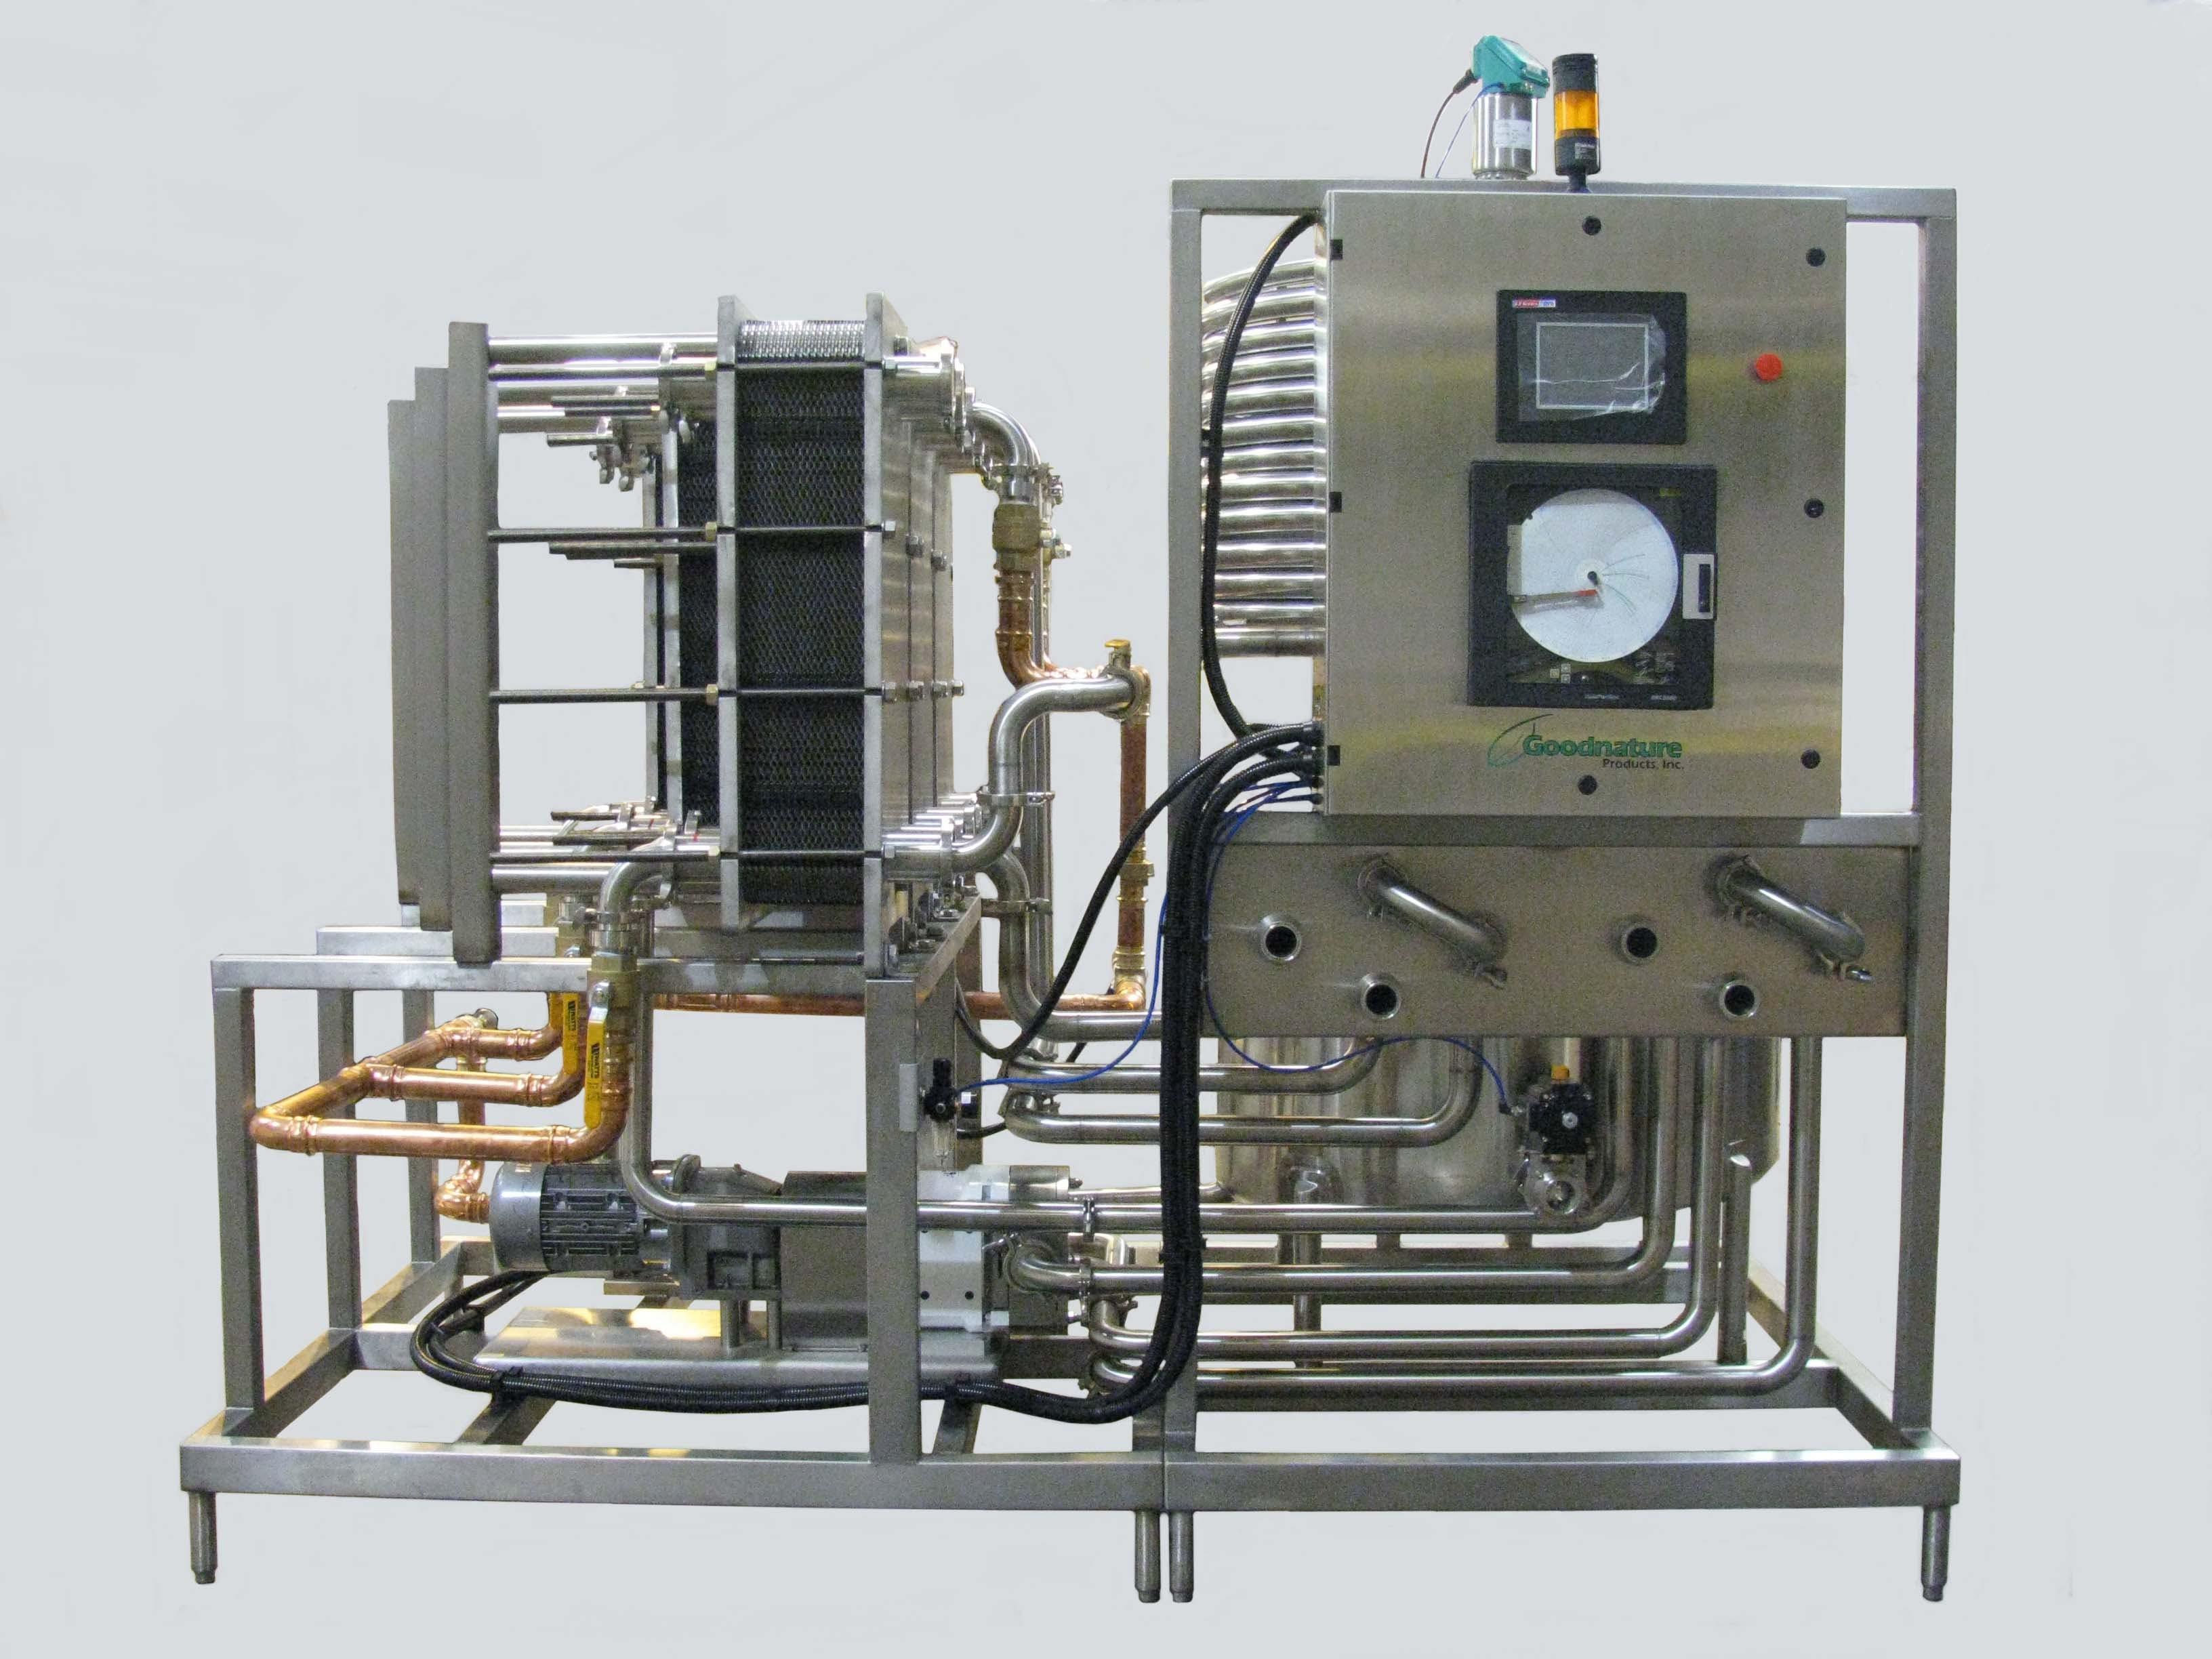 XT Series Pasteurizer Pasteurizer sold by Goodnature Products, Inc.